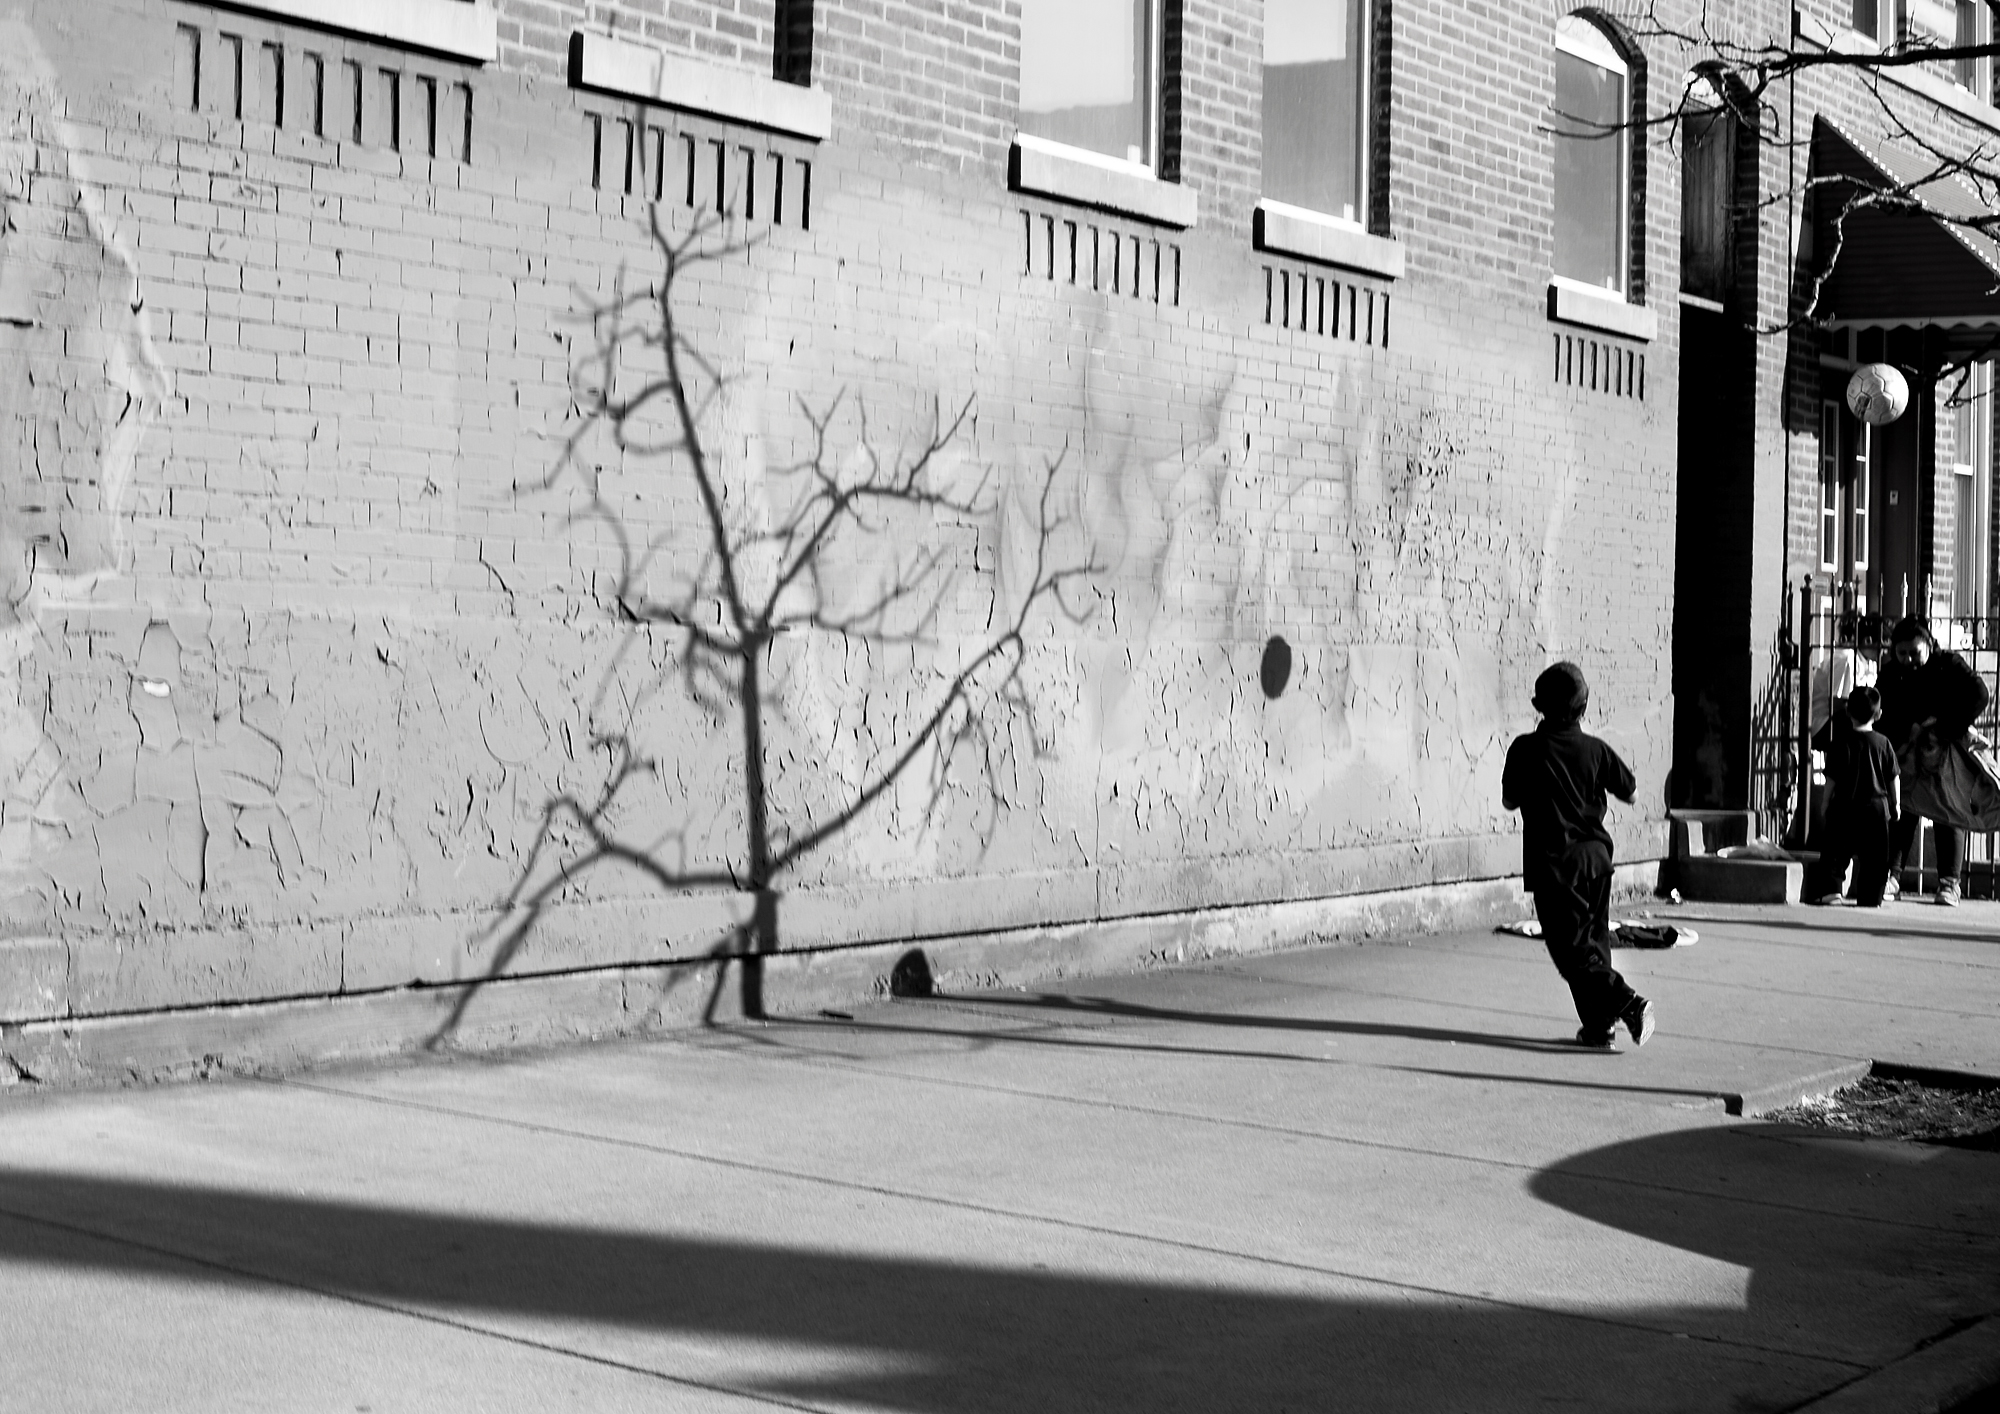 Kids in Pilsen playing soccer on the sidewalk after school during an unusually warm day in March. Photography by Eddie Quinones.